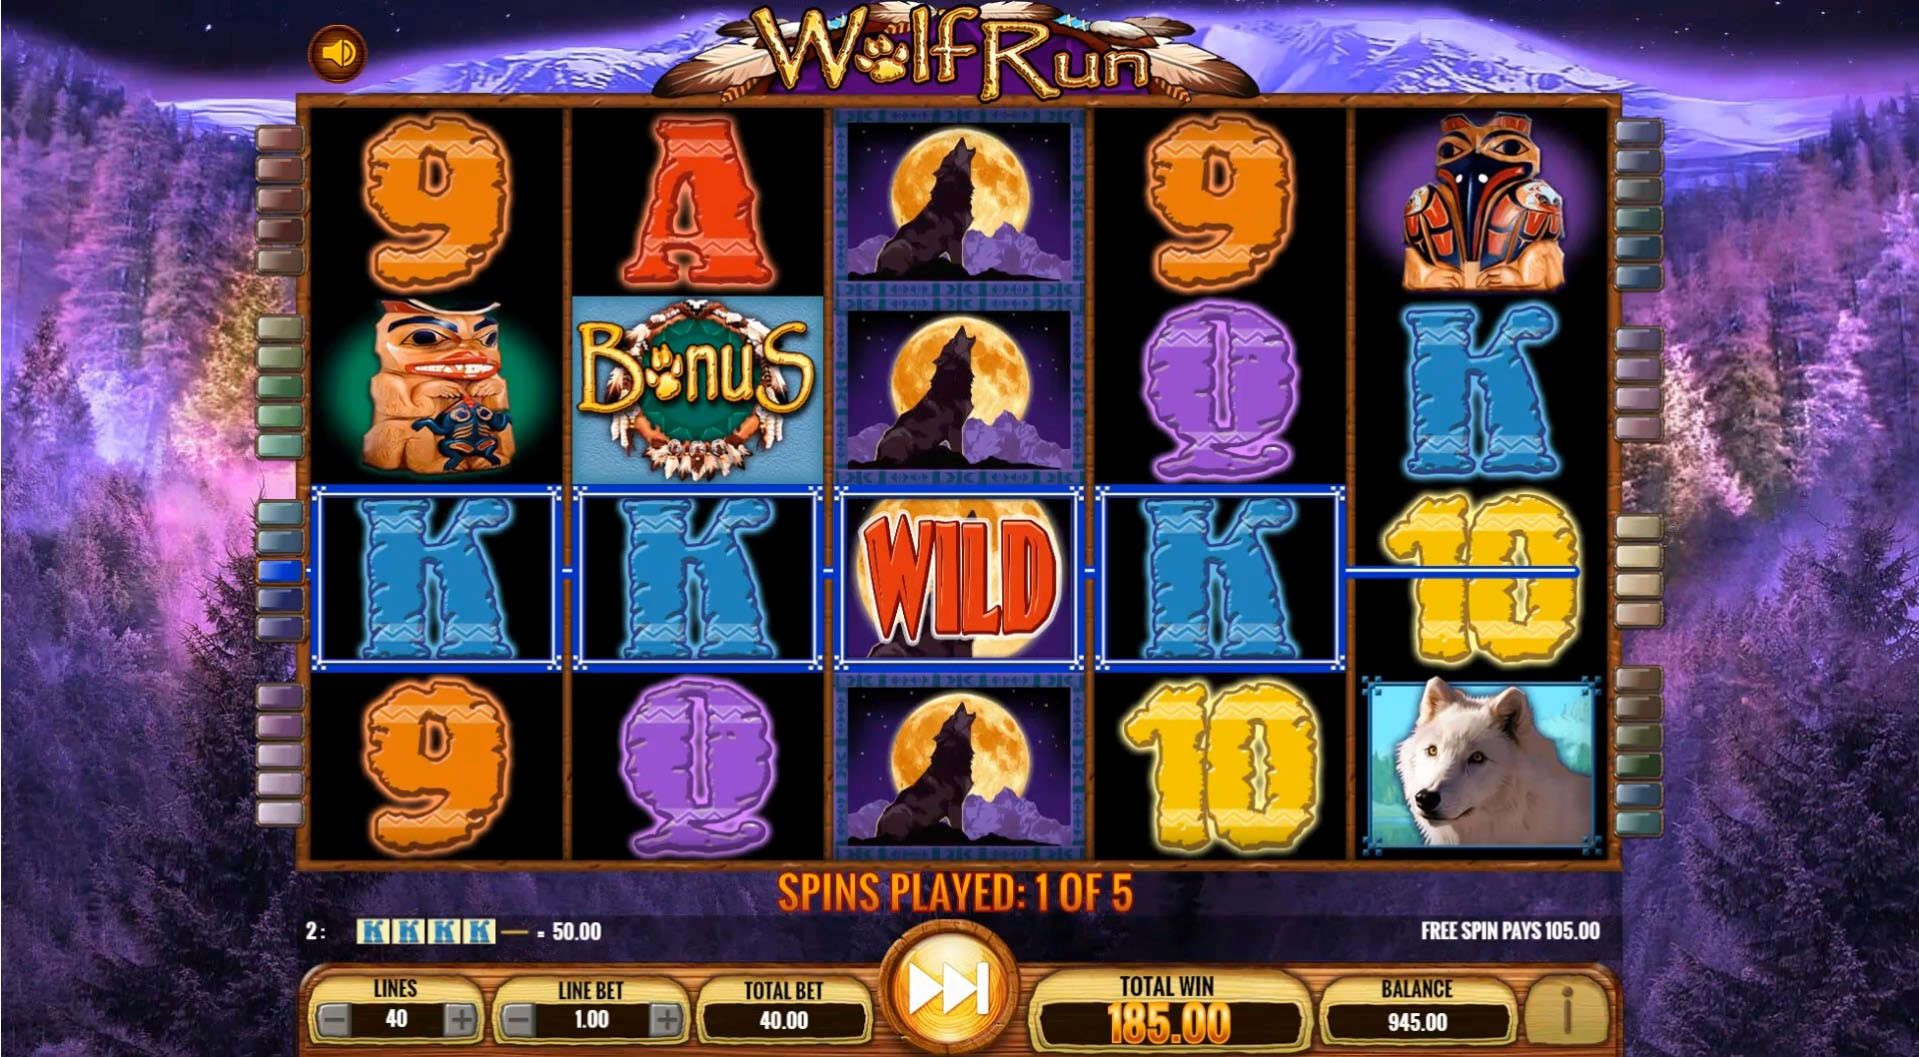 Wolf Run slot's Free Spins mode uses a special darker theme to create a sense of excitement